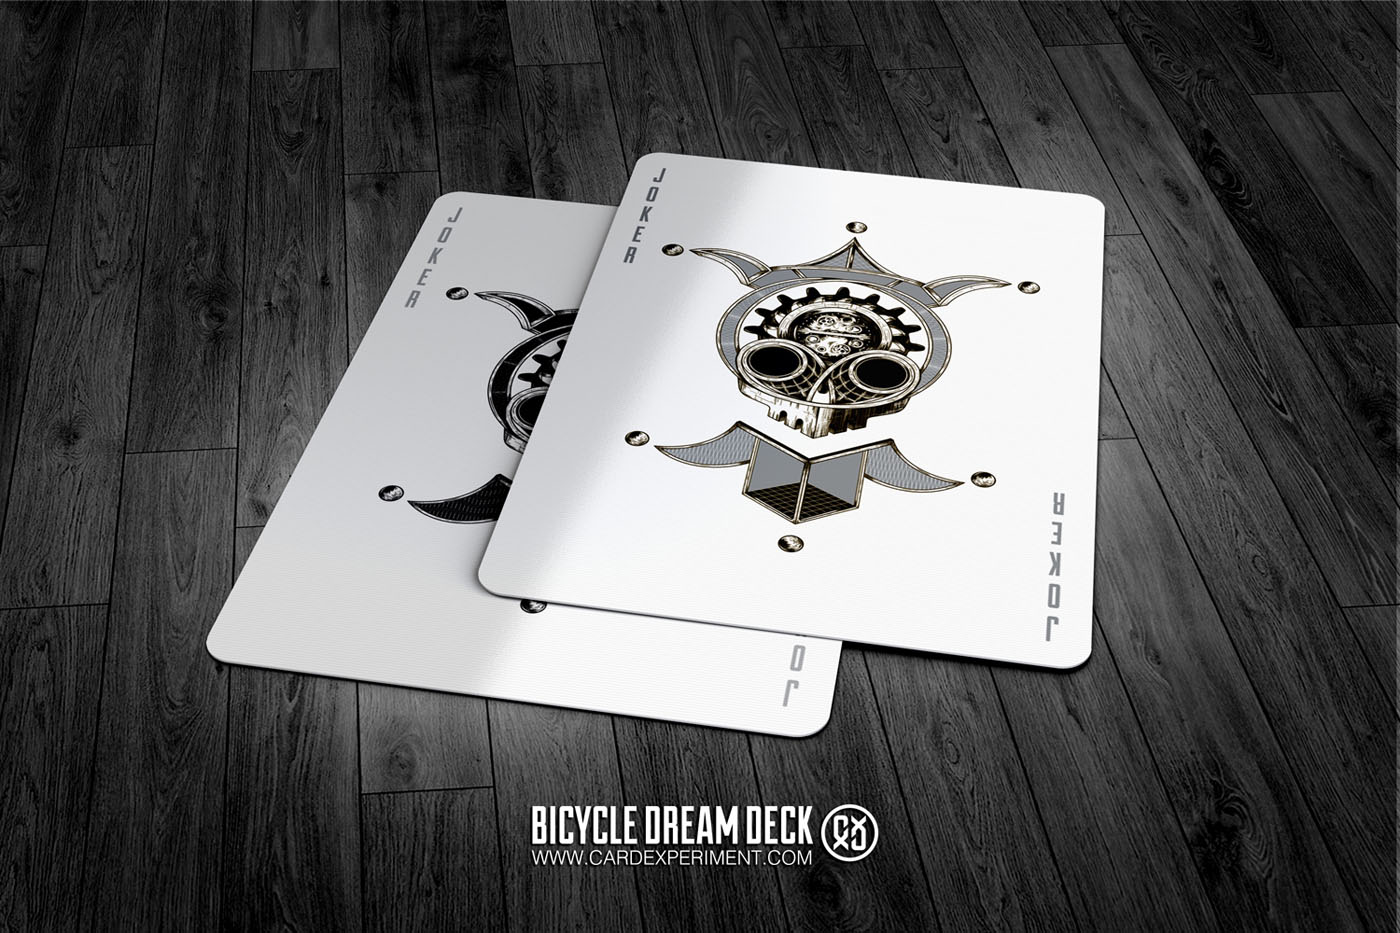 card experiment bicycle dream playing cards playing cards art collecting. Black Bedroom Furniture Sets. Home Design Ideas